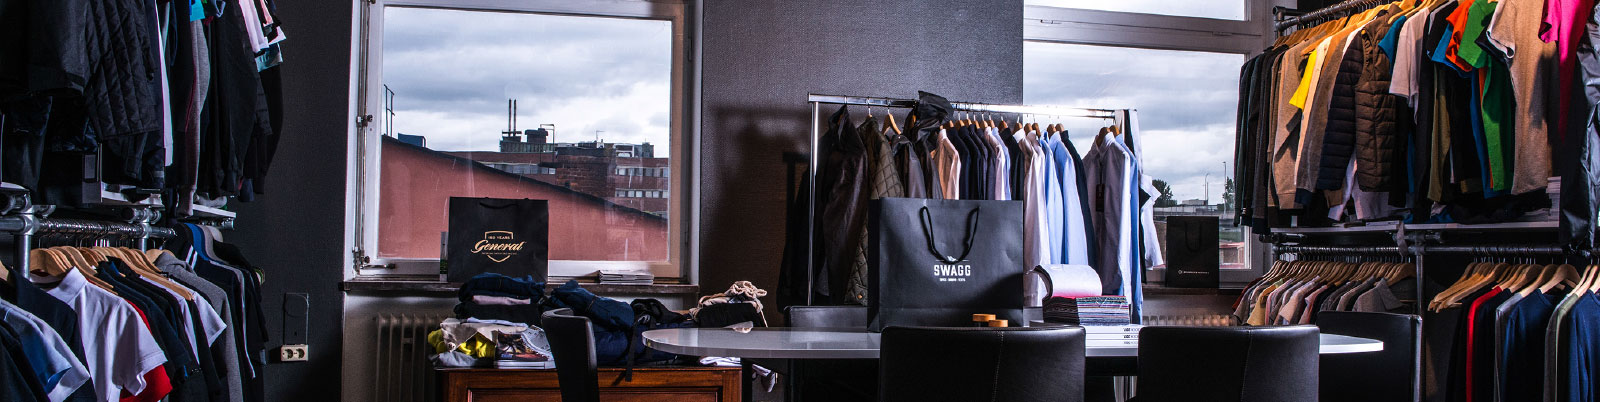 Swagg tryckeri Stockholm showroom